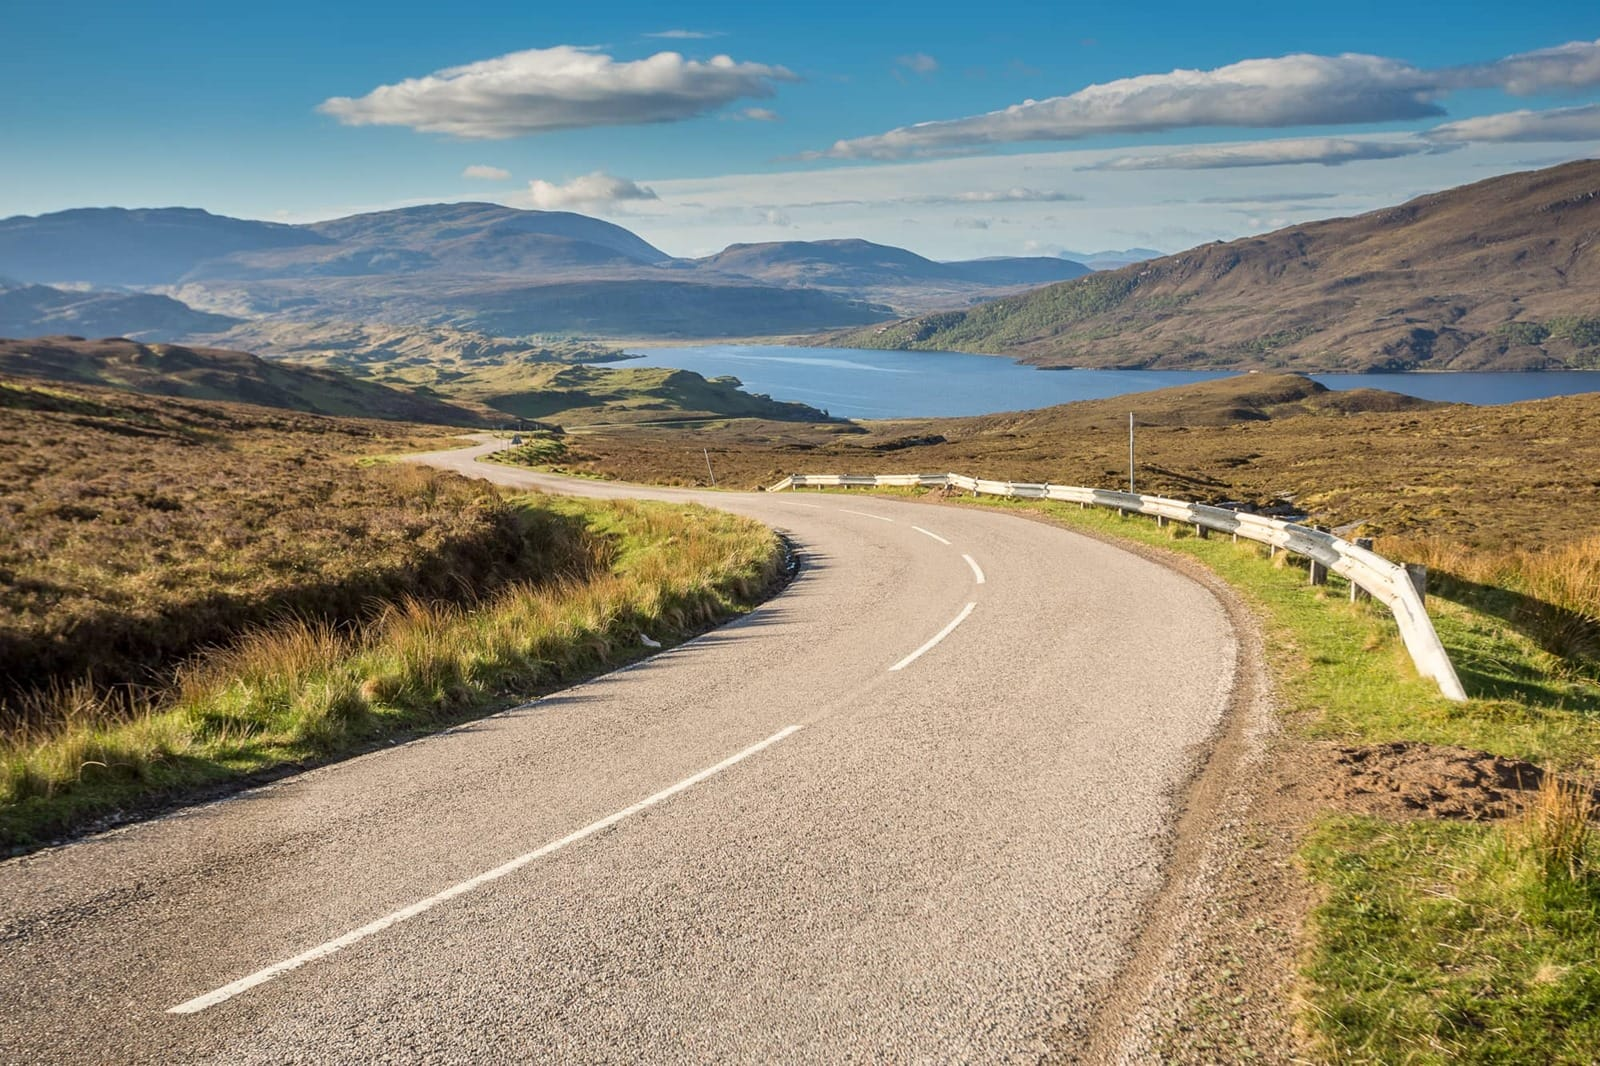 [NC500+Roads+by+Laurence+Norah-2%5B4%5D]